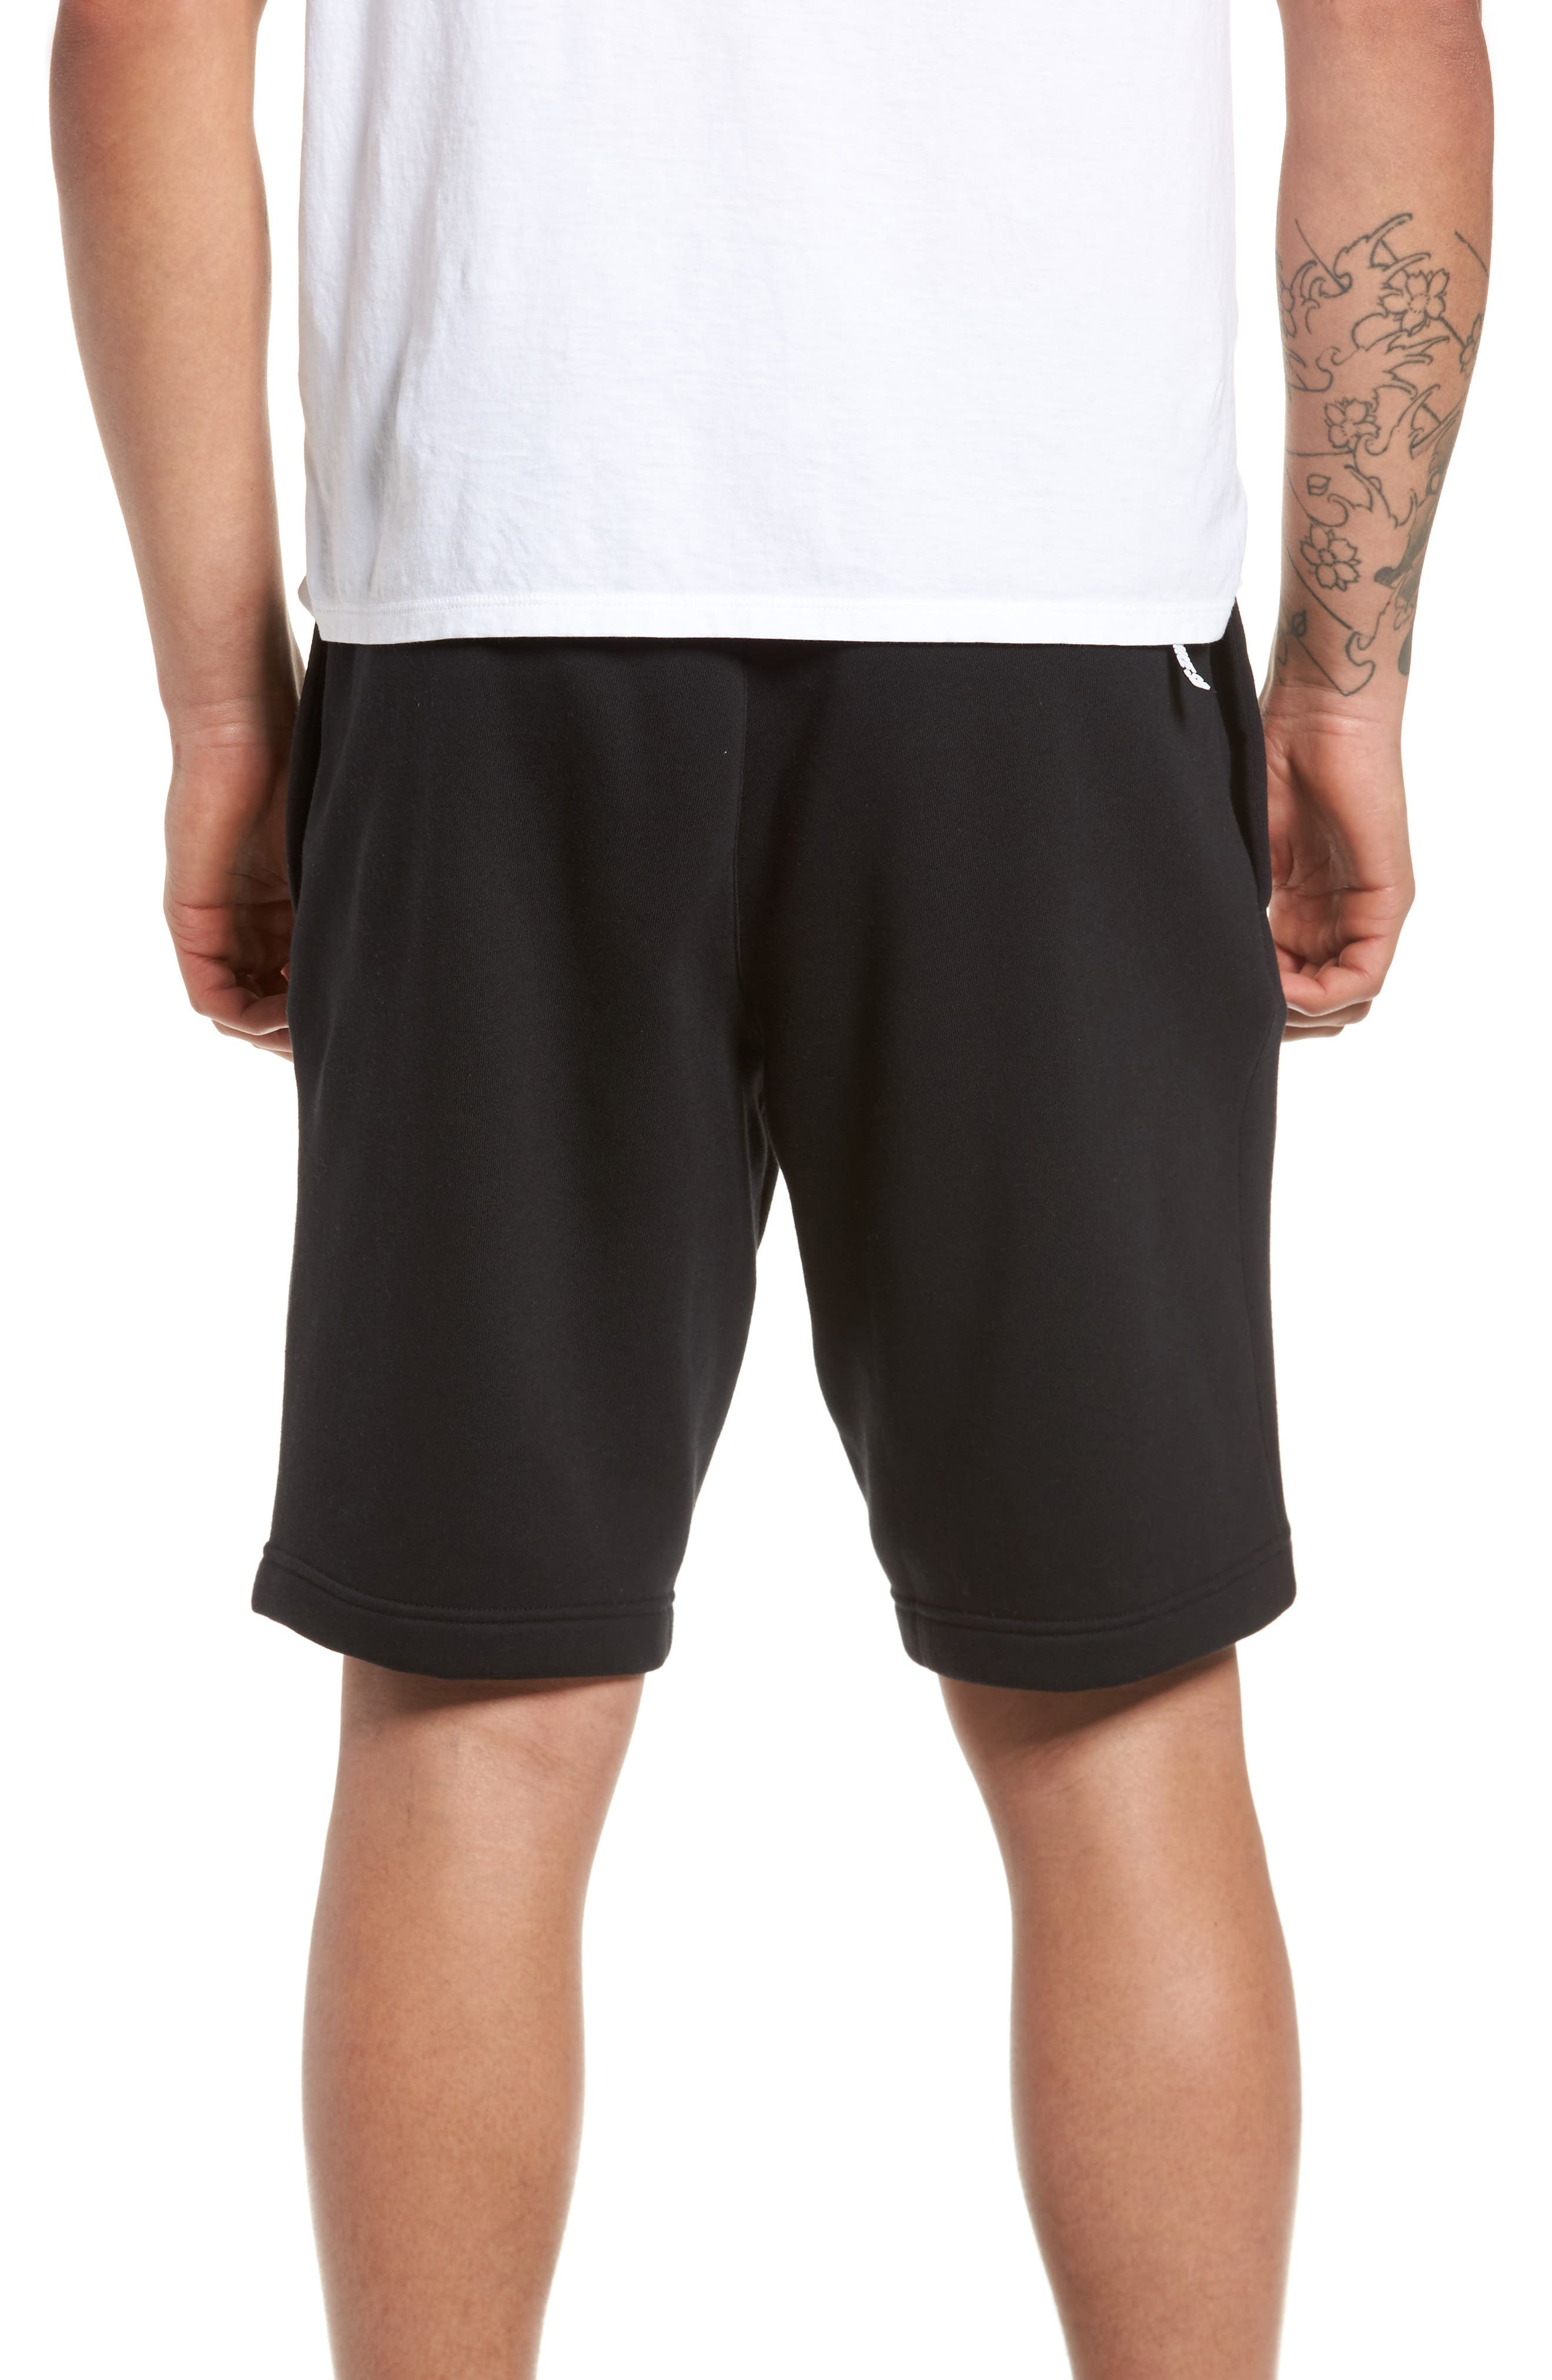 Fleece Shorts,                             Alternate thumbnail 2, color,                             Black/ White